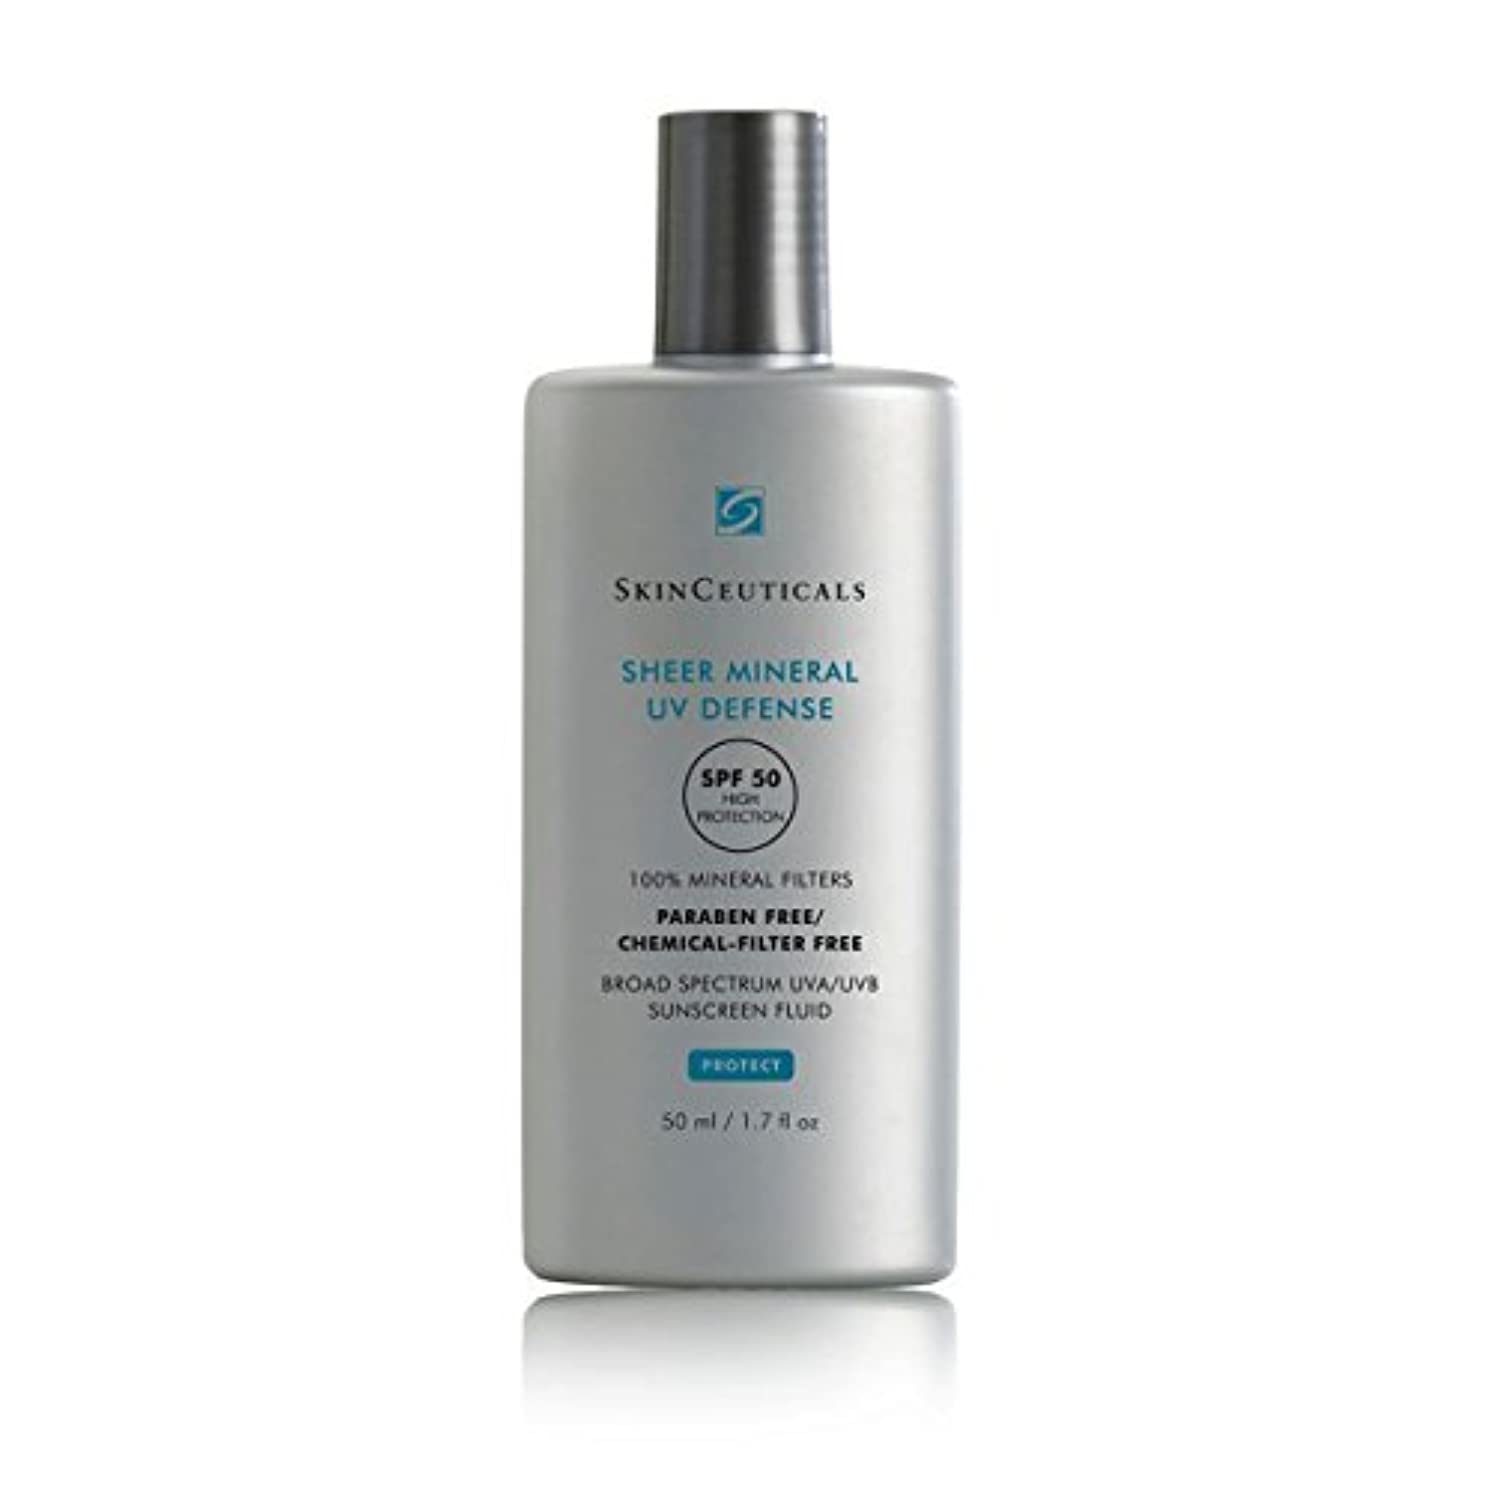 標高ベルト顕著Skinceuticals Protect Sheer Mineral Uv Defense Spf50 50ml [並行輸入品]